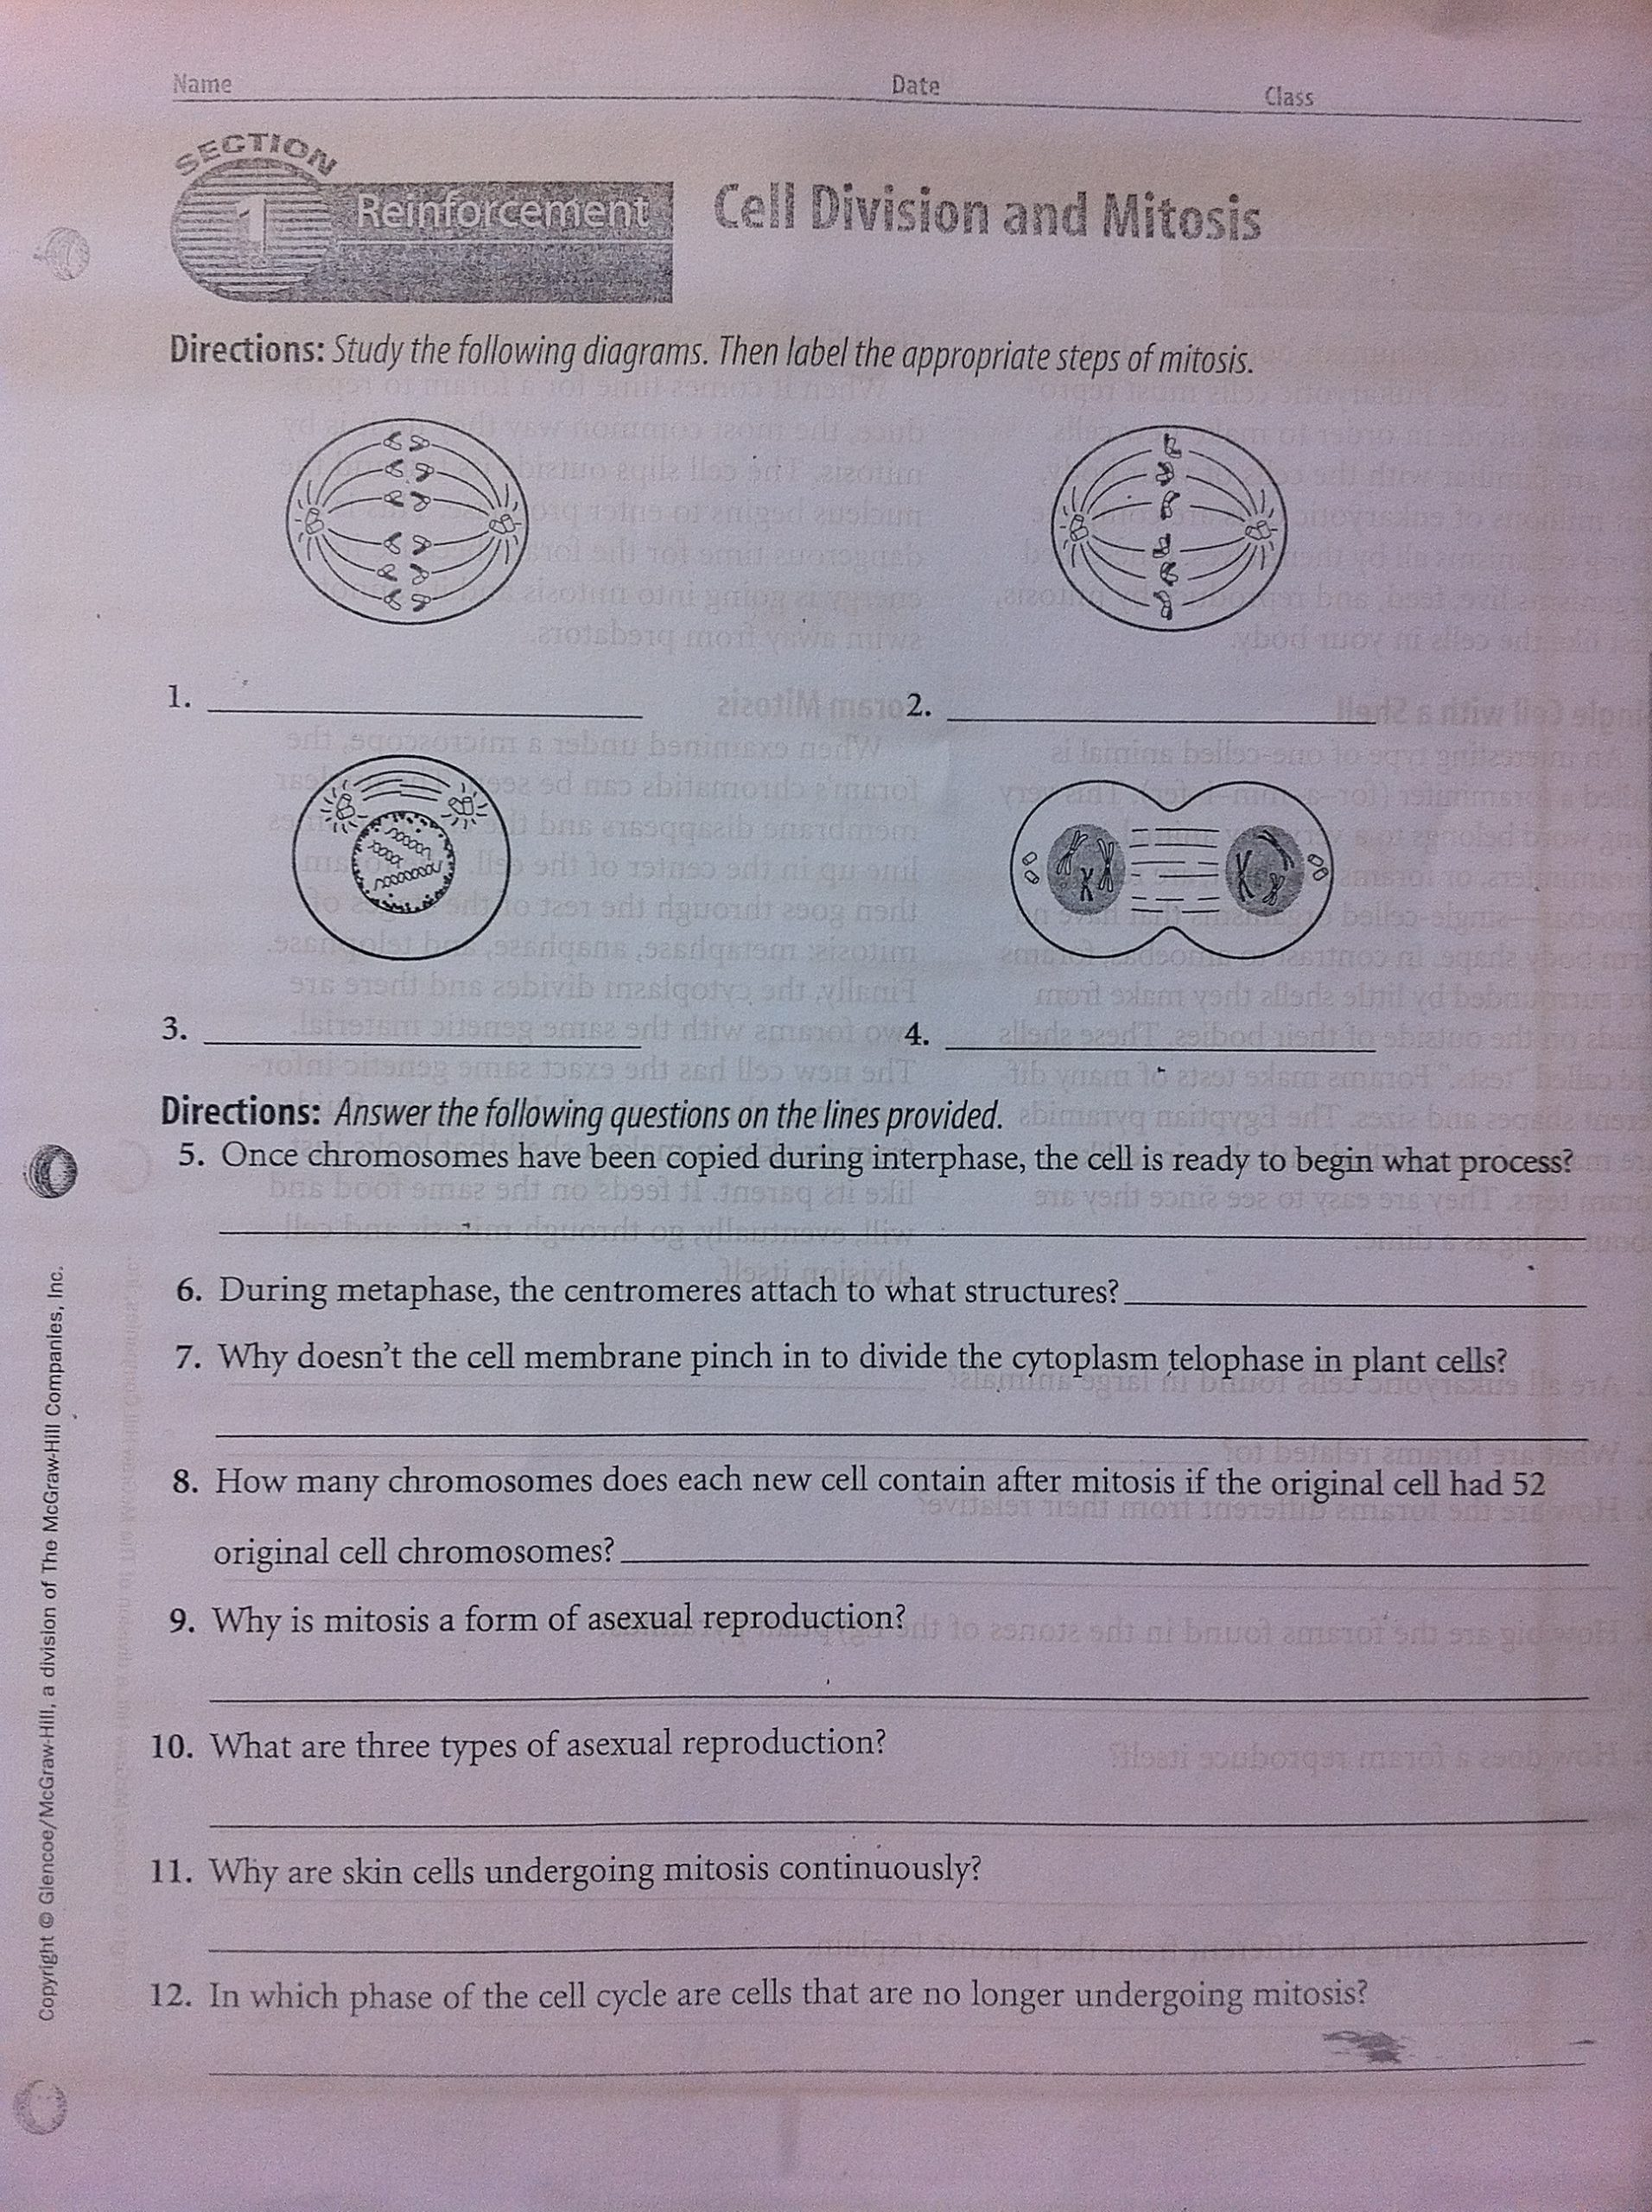 Meiosis Matching Worksheet Answer Key Cells & Mitosis Reinforcement